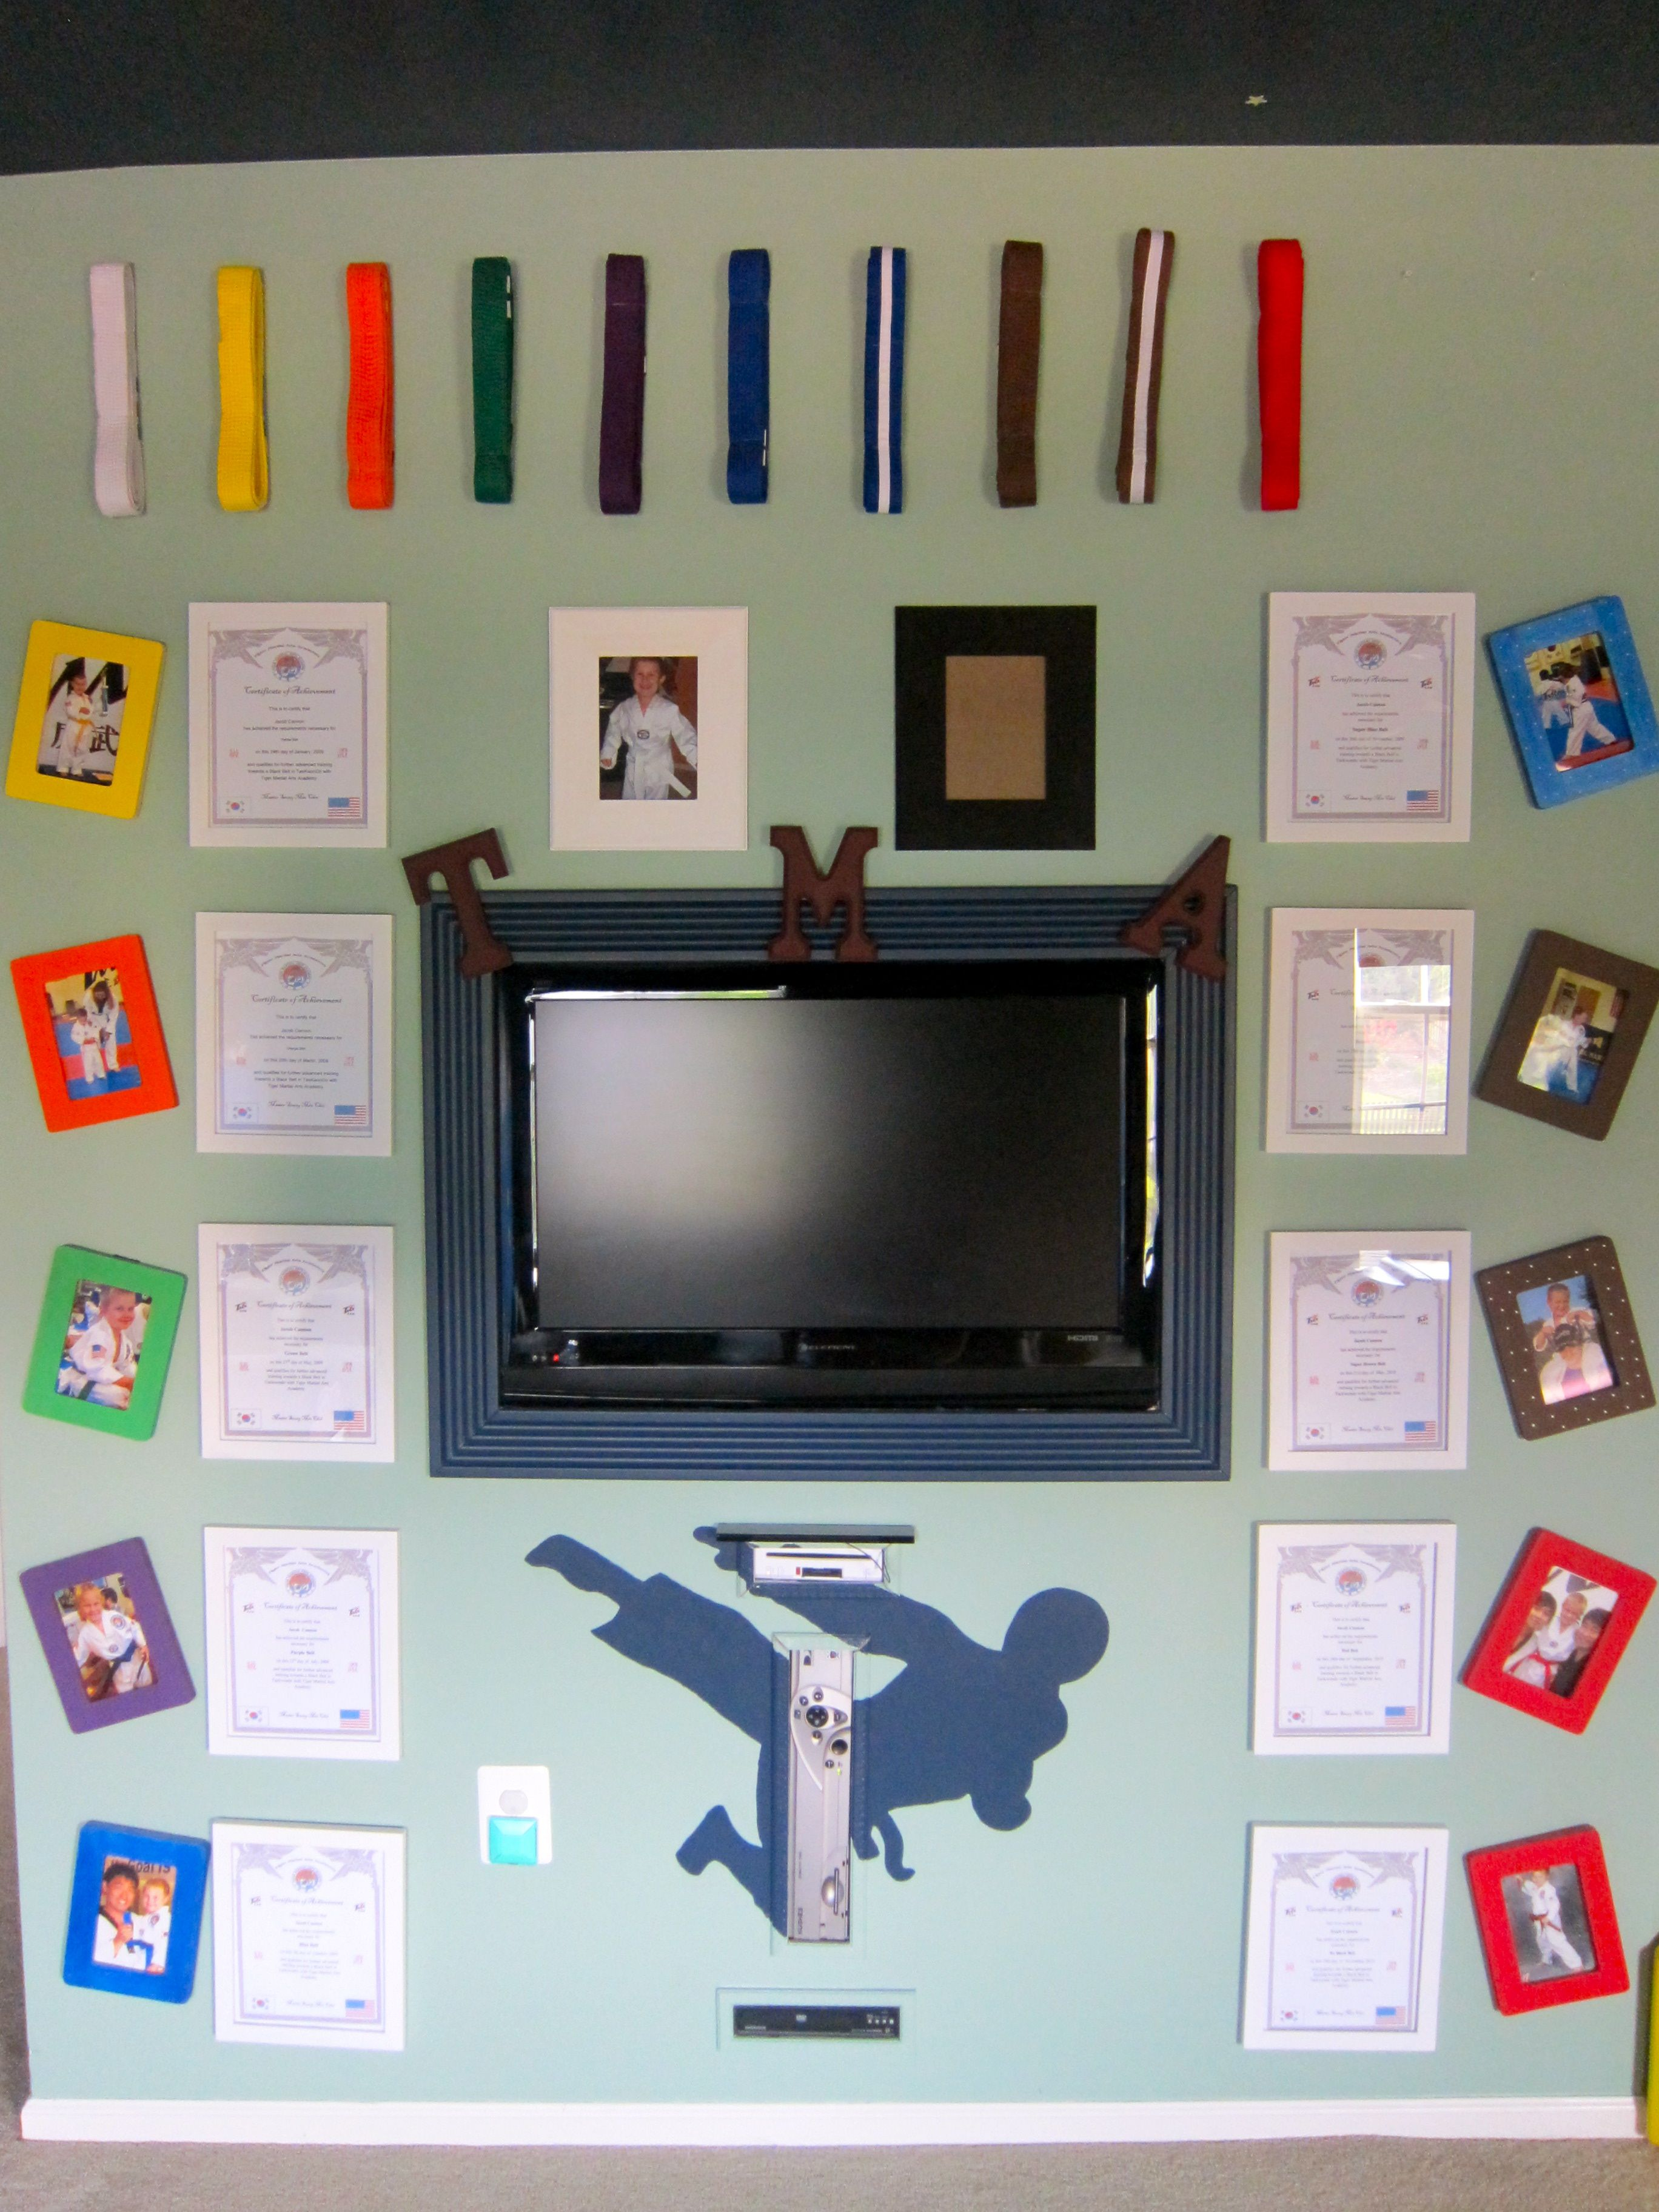 Taekwondo Wall I Needed A Place To Display My Son's Belts